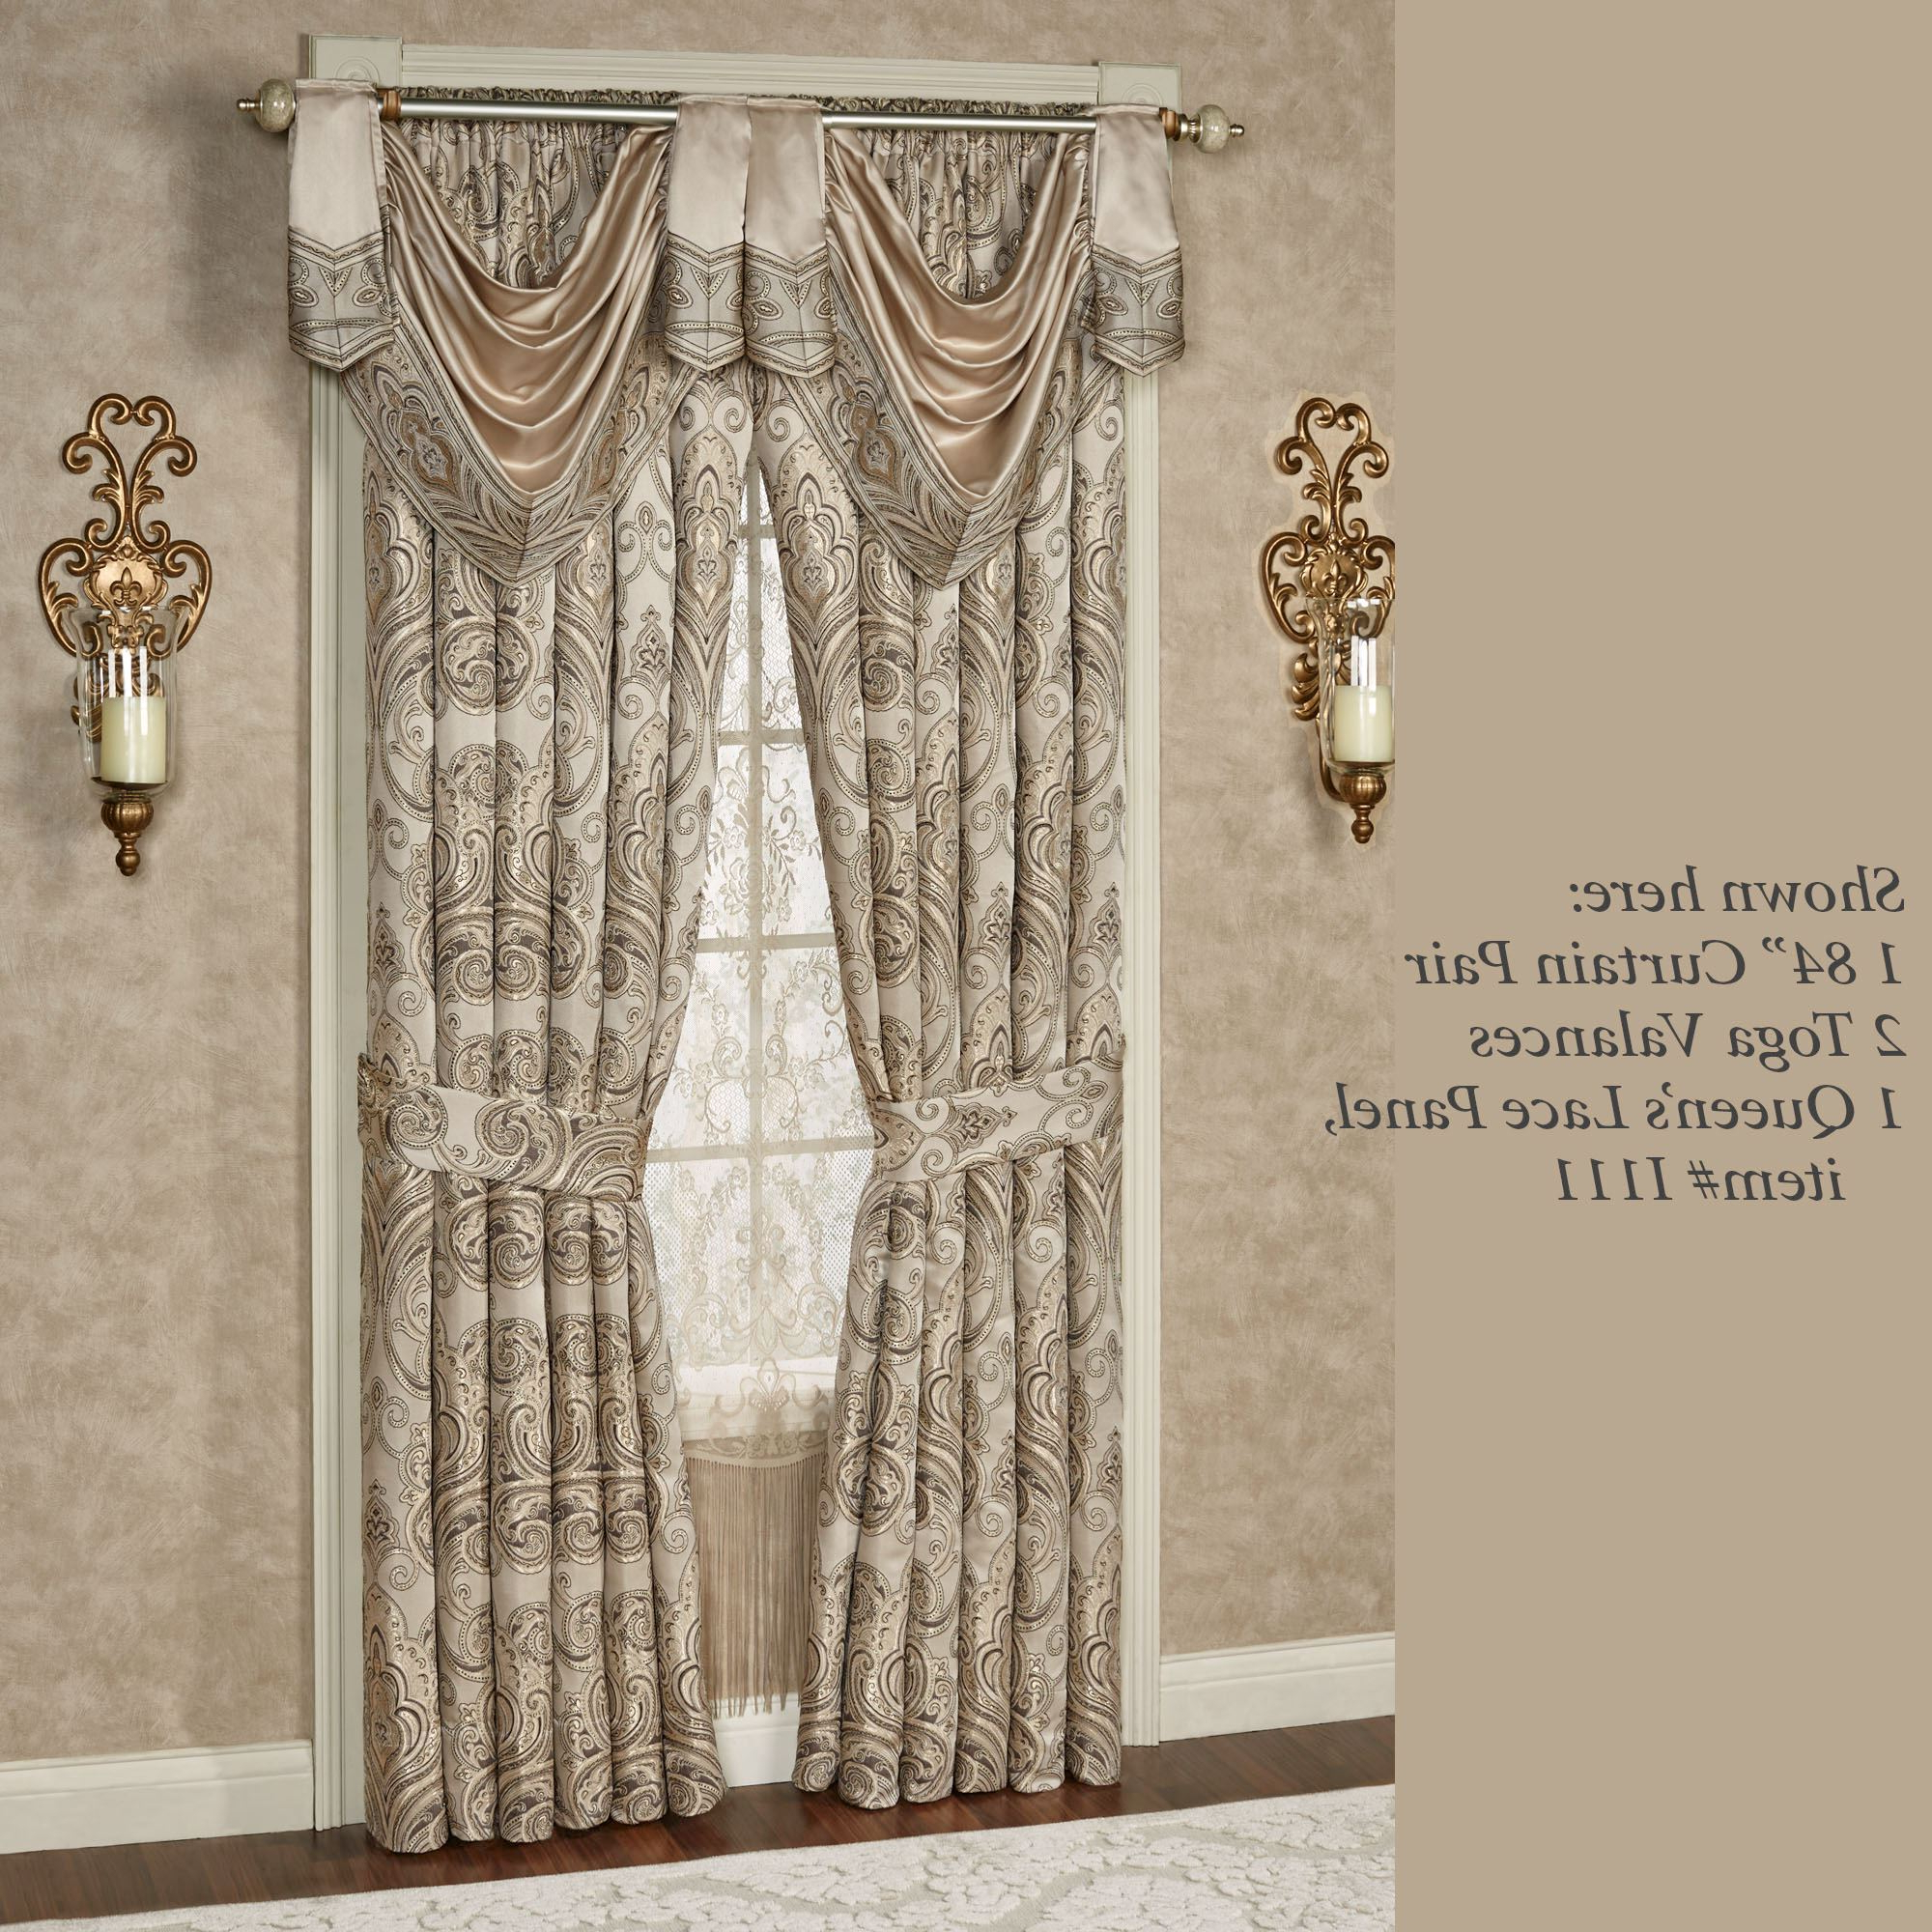 Medallion Window Curtain Valances Pertaining To Recent Set Bay For Valances Lace Valance Curtains Diy Pattern (Gallery 19 of 20)